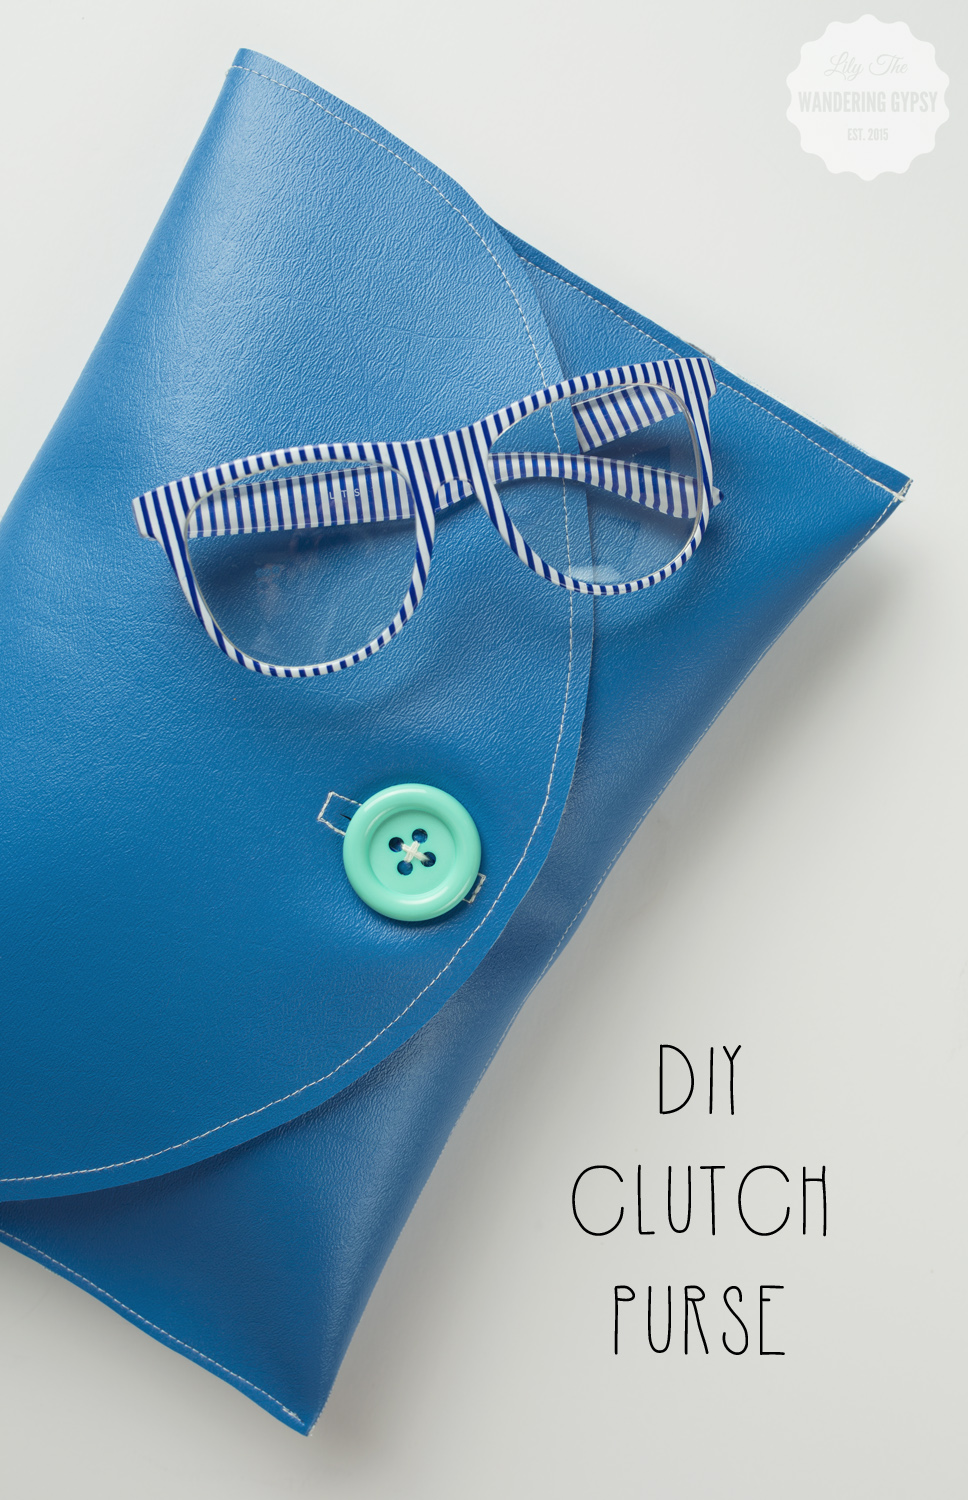 How To Make A Clutch Purse